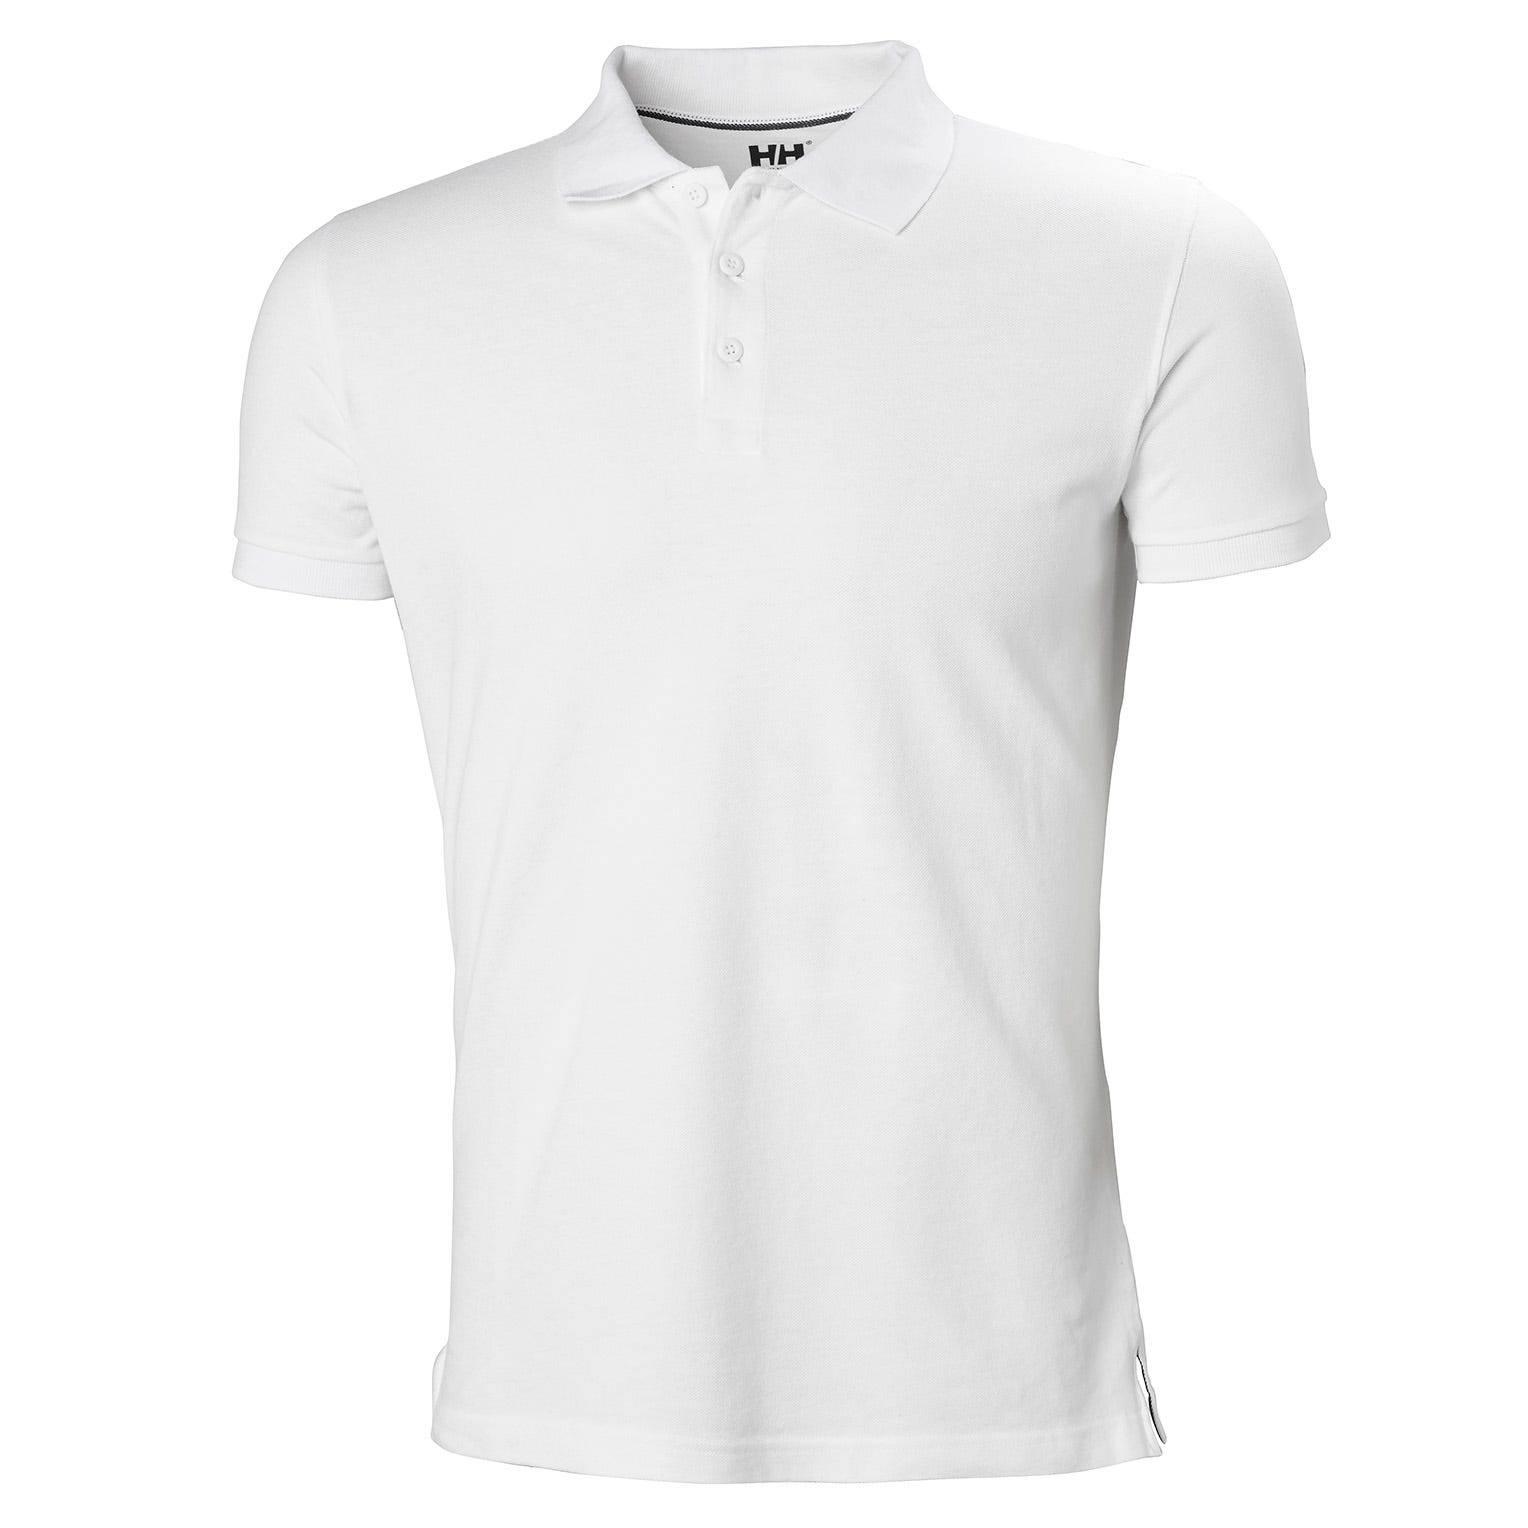 Helly Hansen Crew Polo Mens Performance Wicking White L